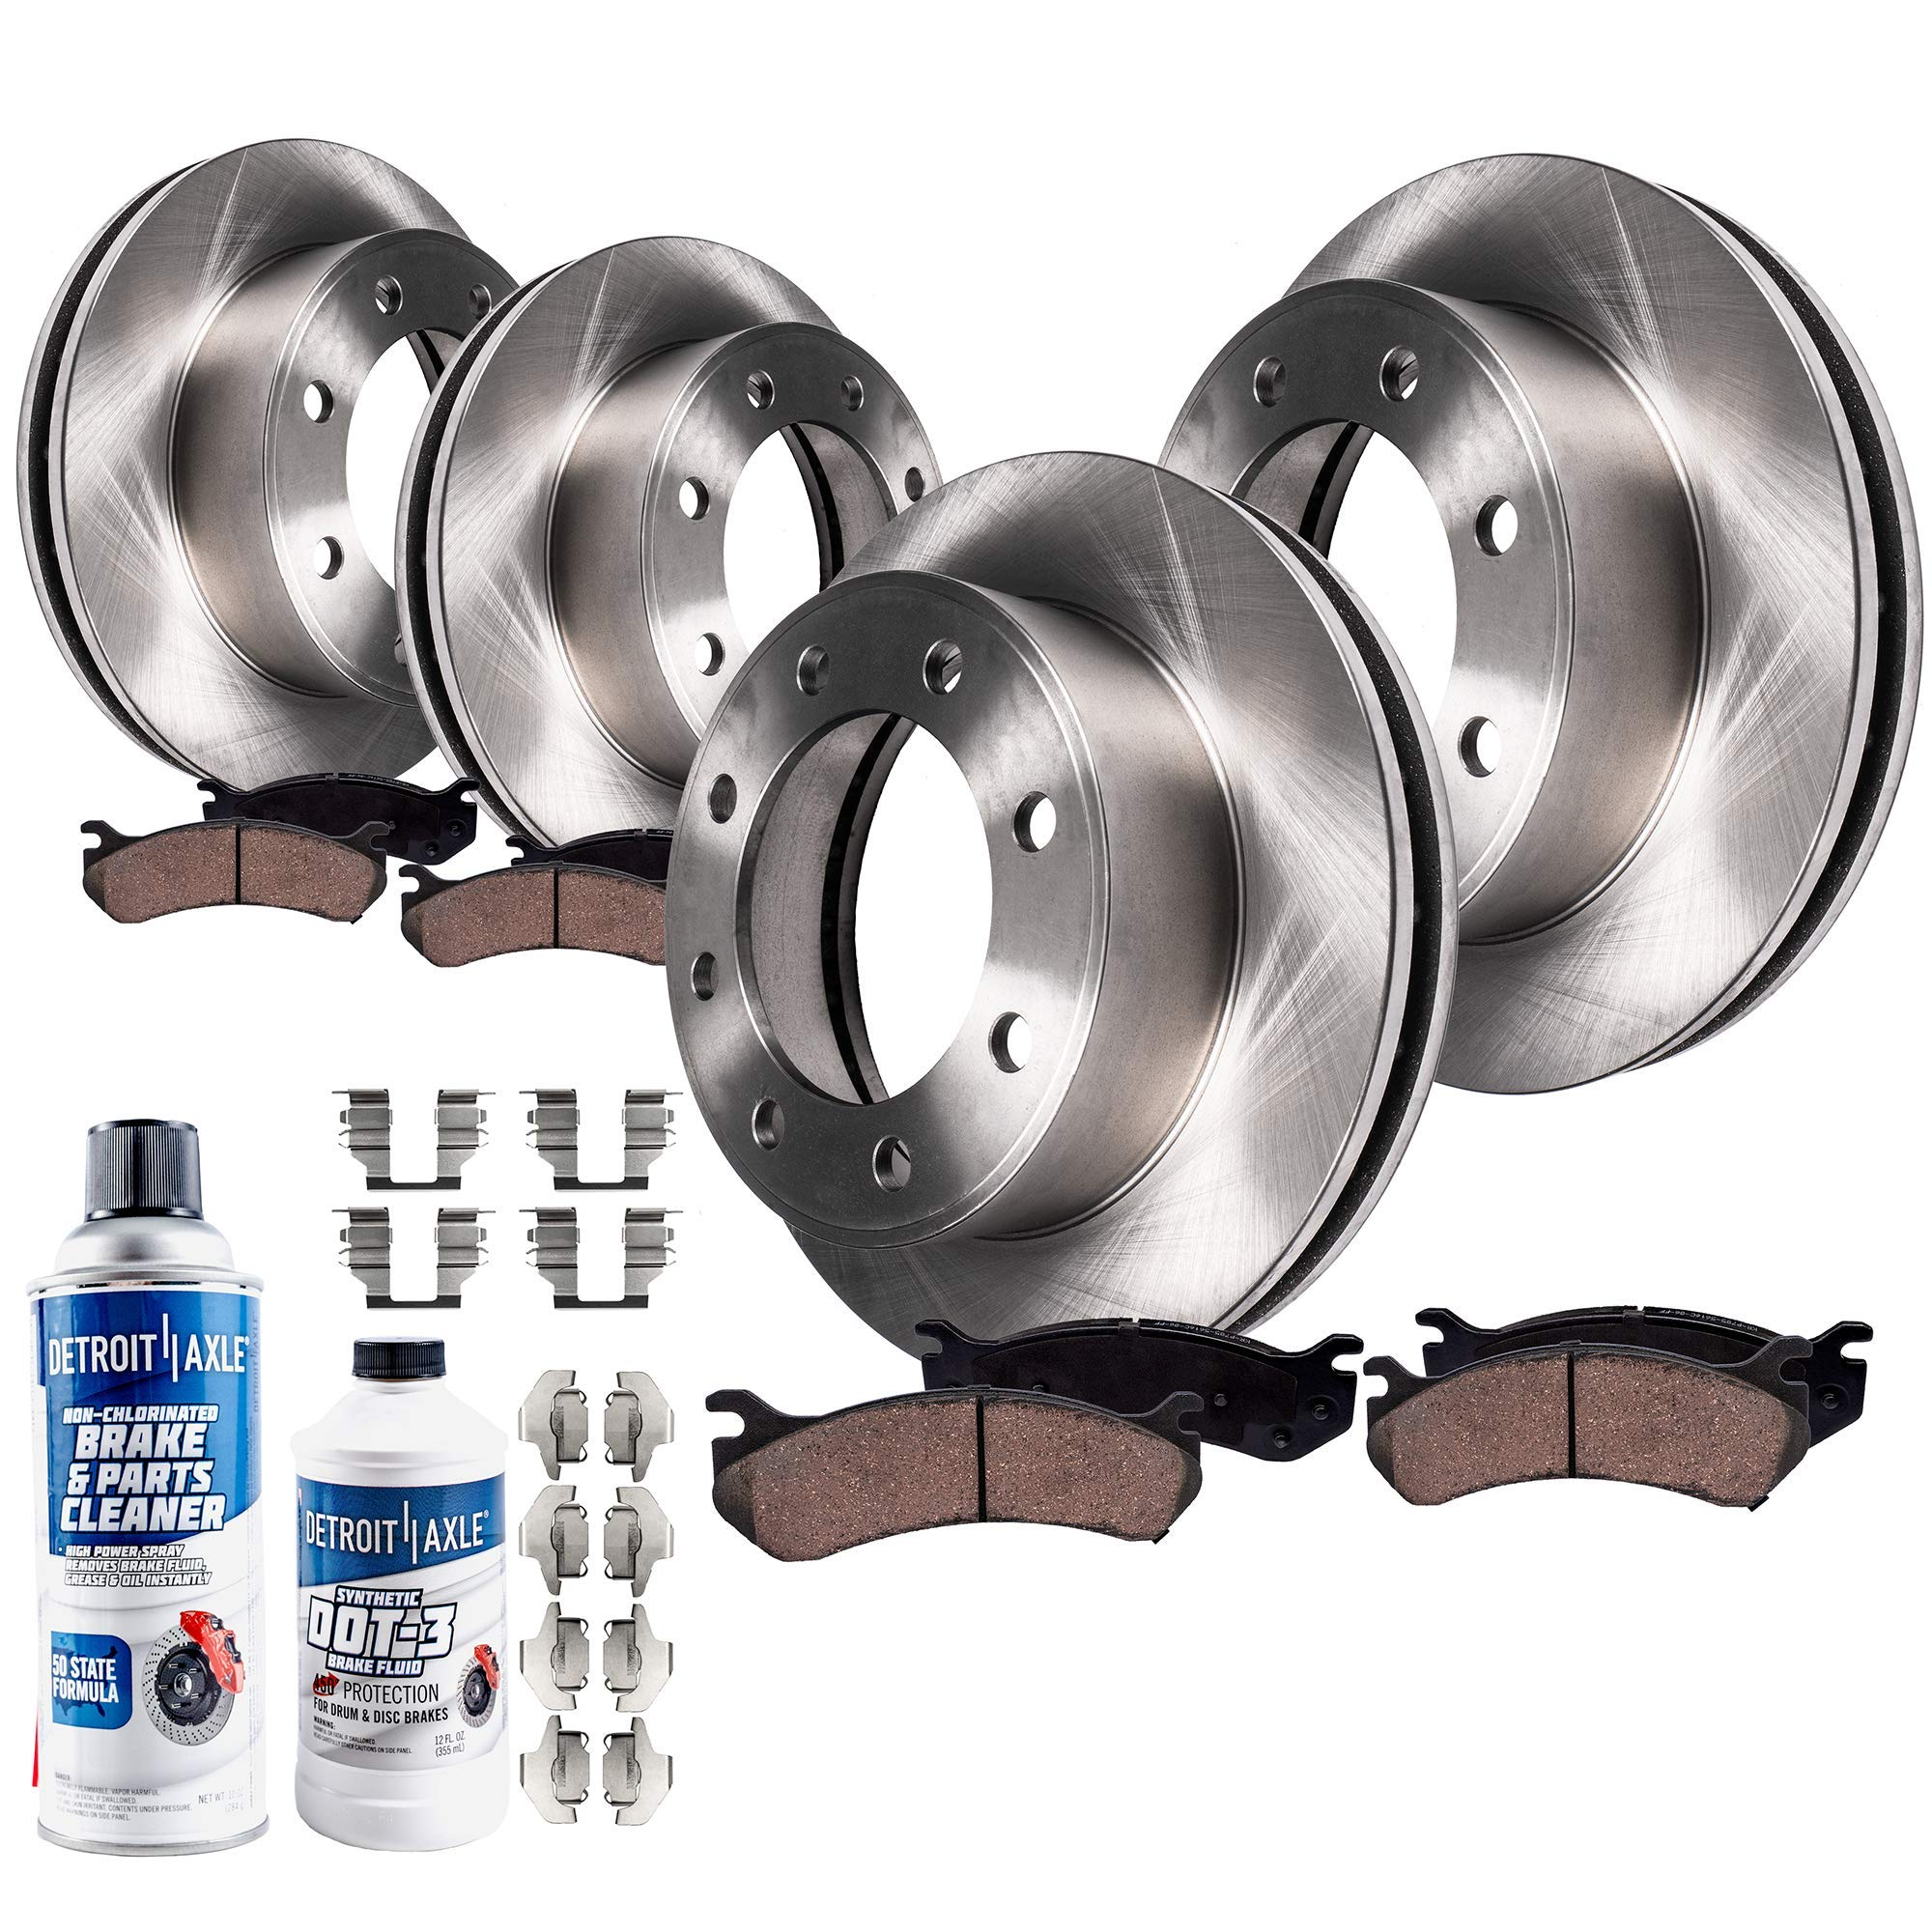 With Two Years Manufacturer Warranty No Hardware Included For Brake Pads Rear Disc Brake Rotors and Ceramic Brake Pads for 2012 Ram 3500